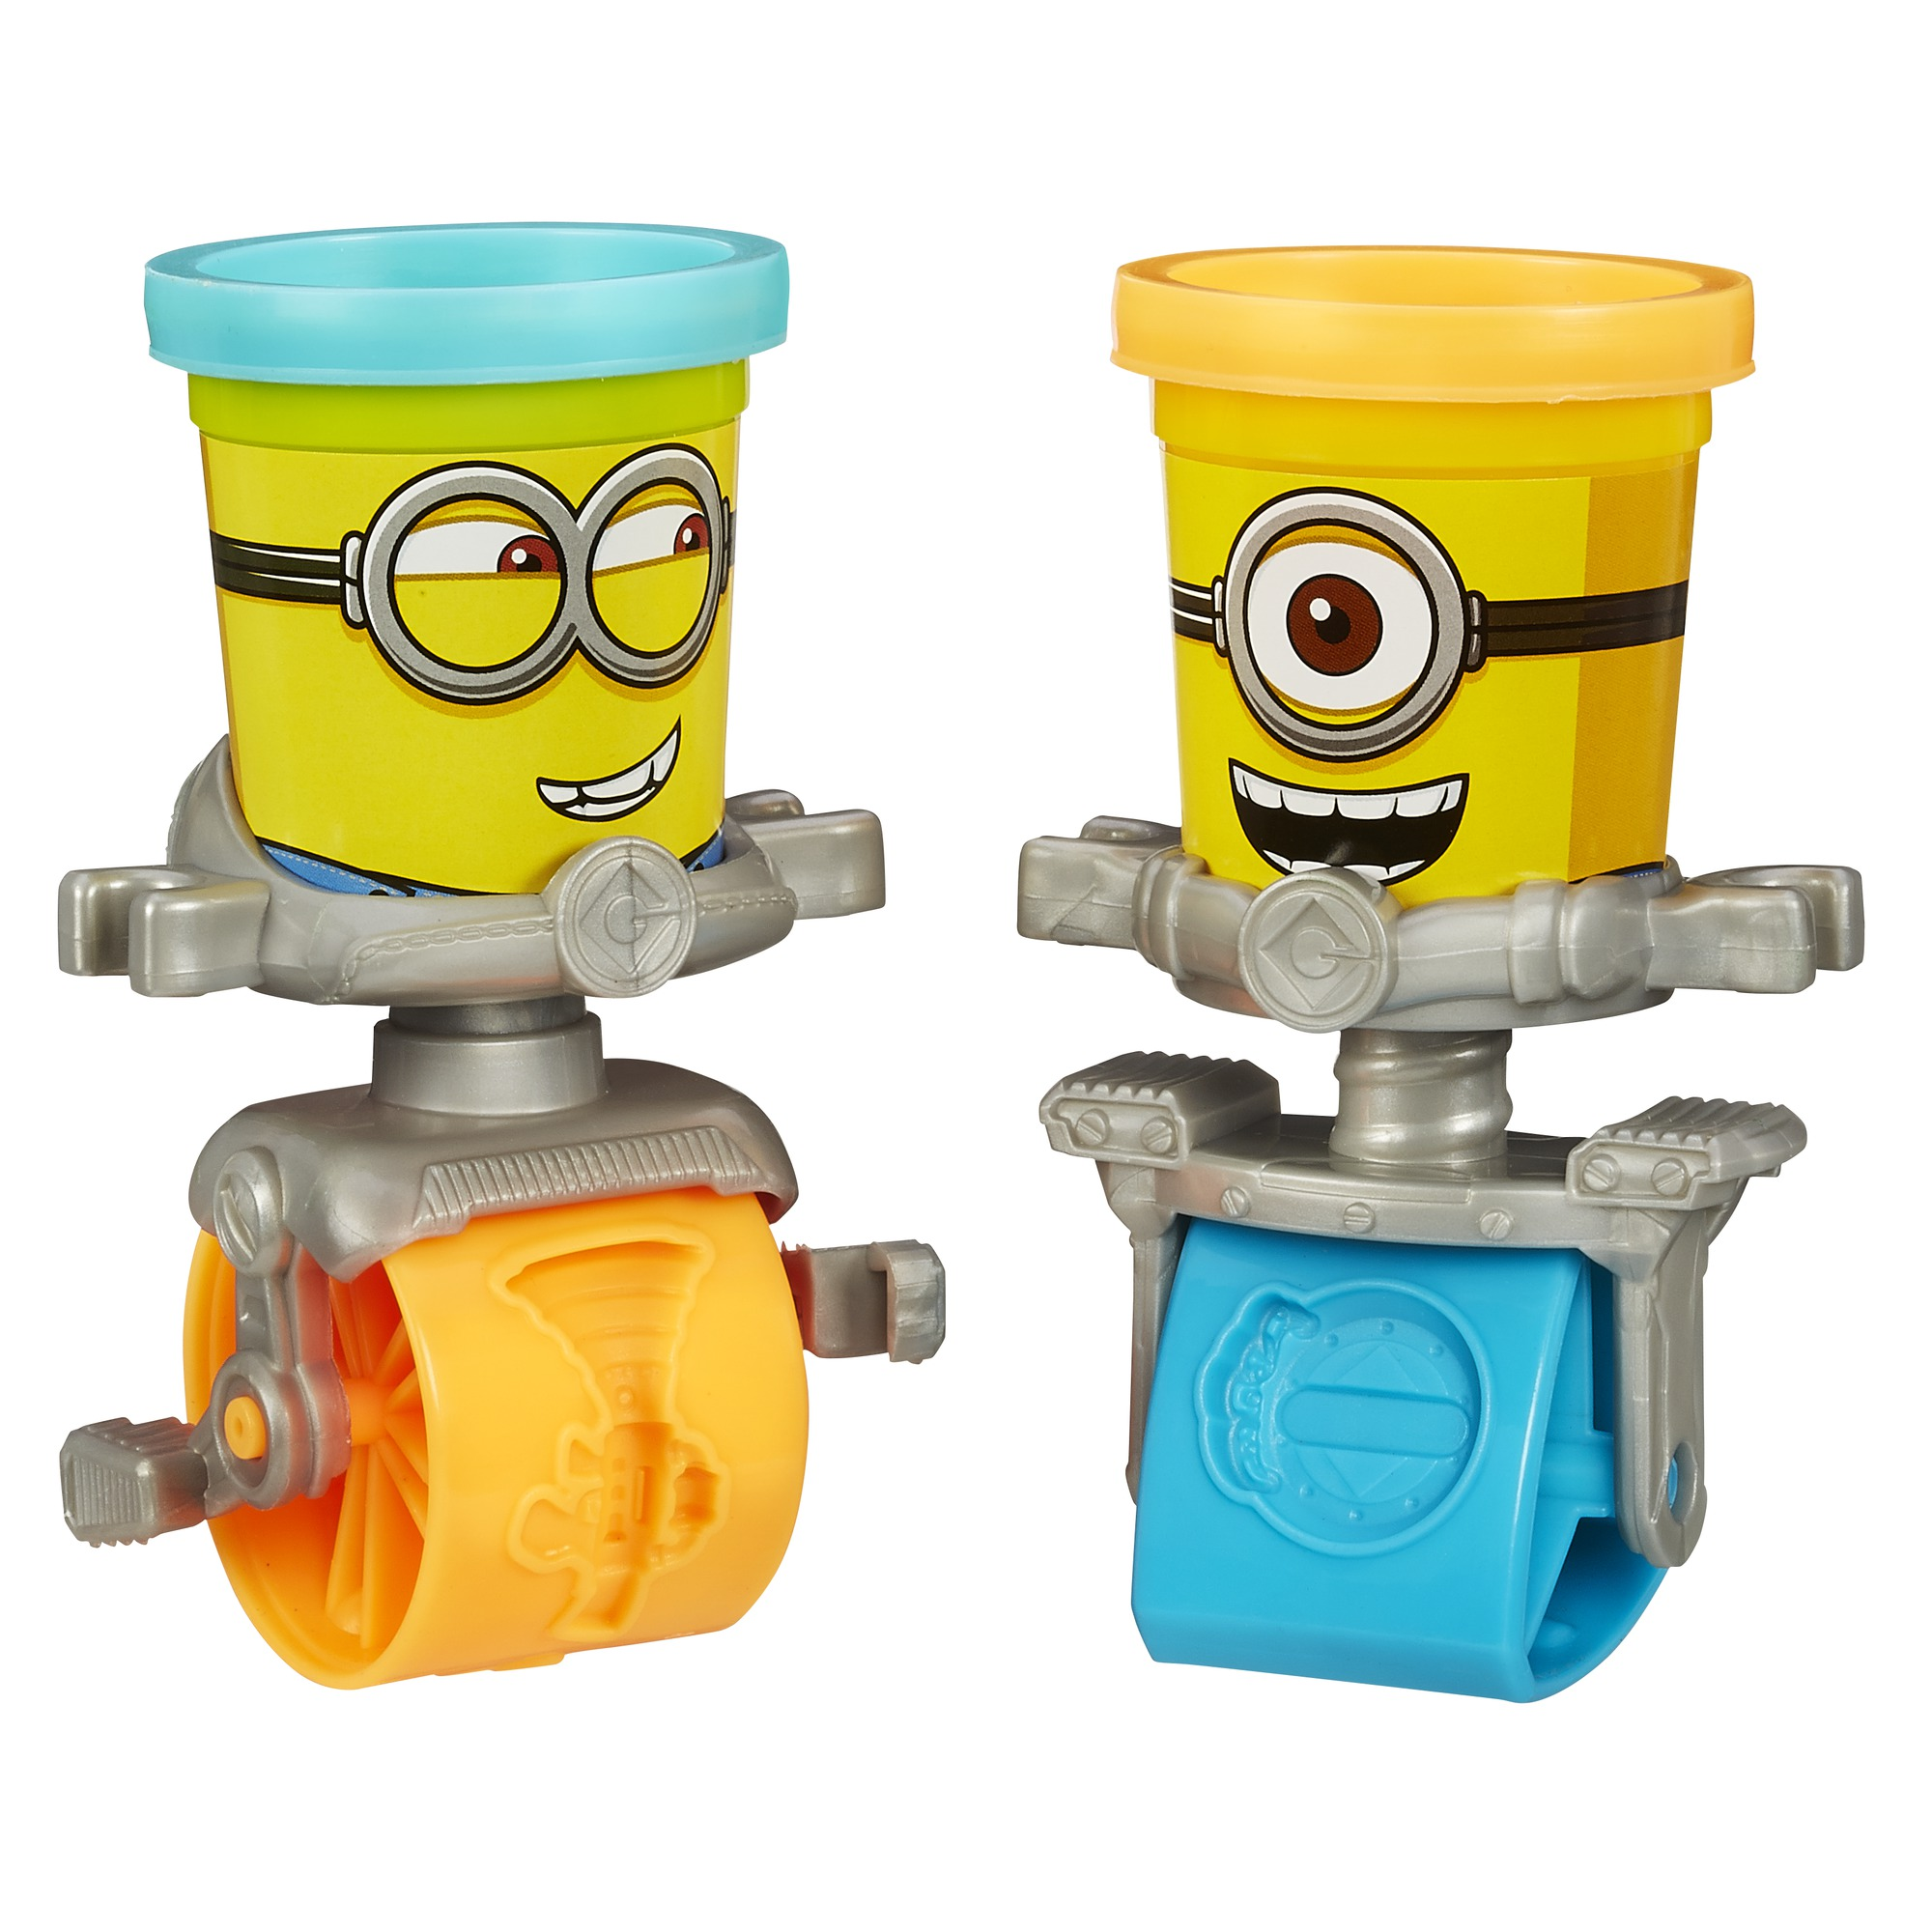 Play-Doh Stamp and Roll Set Featuring Despicable Me Minions PartNumber: 004W006619060001P KsnValue: 6619060 MfgPartNumber: B0788AS00